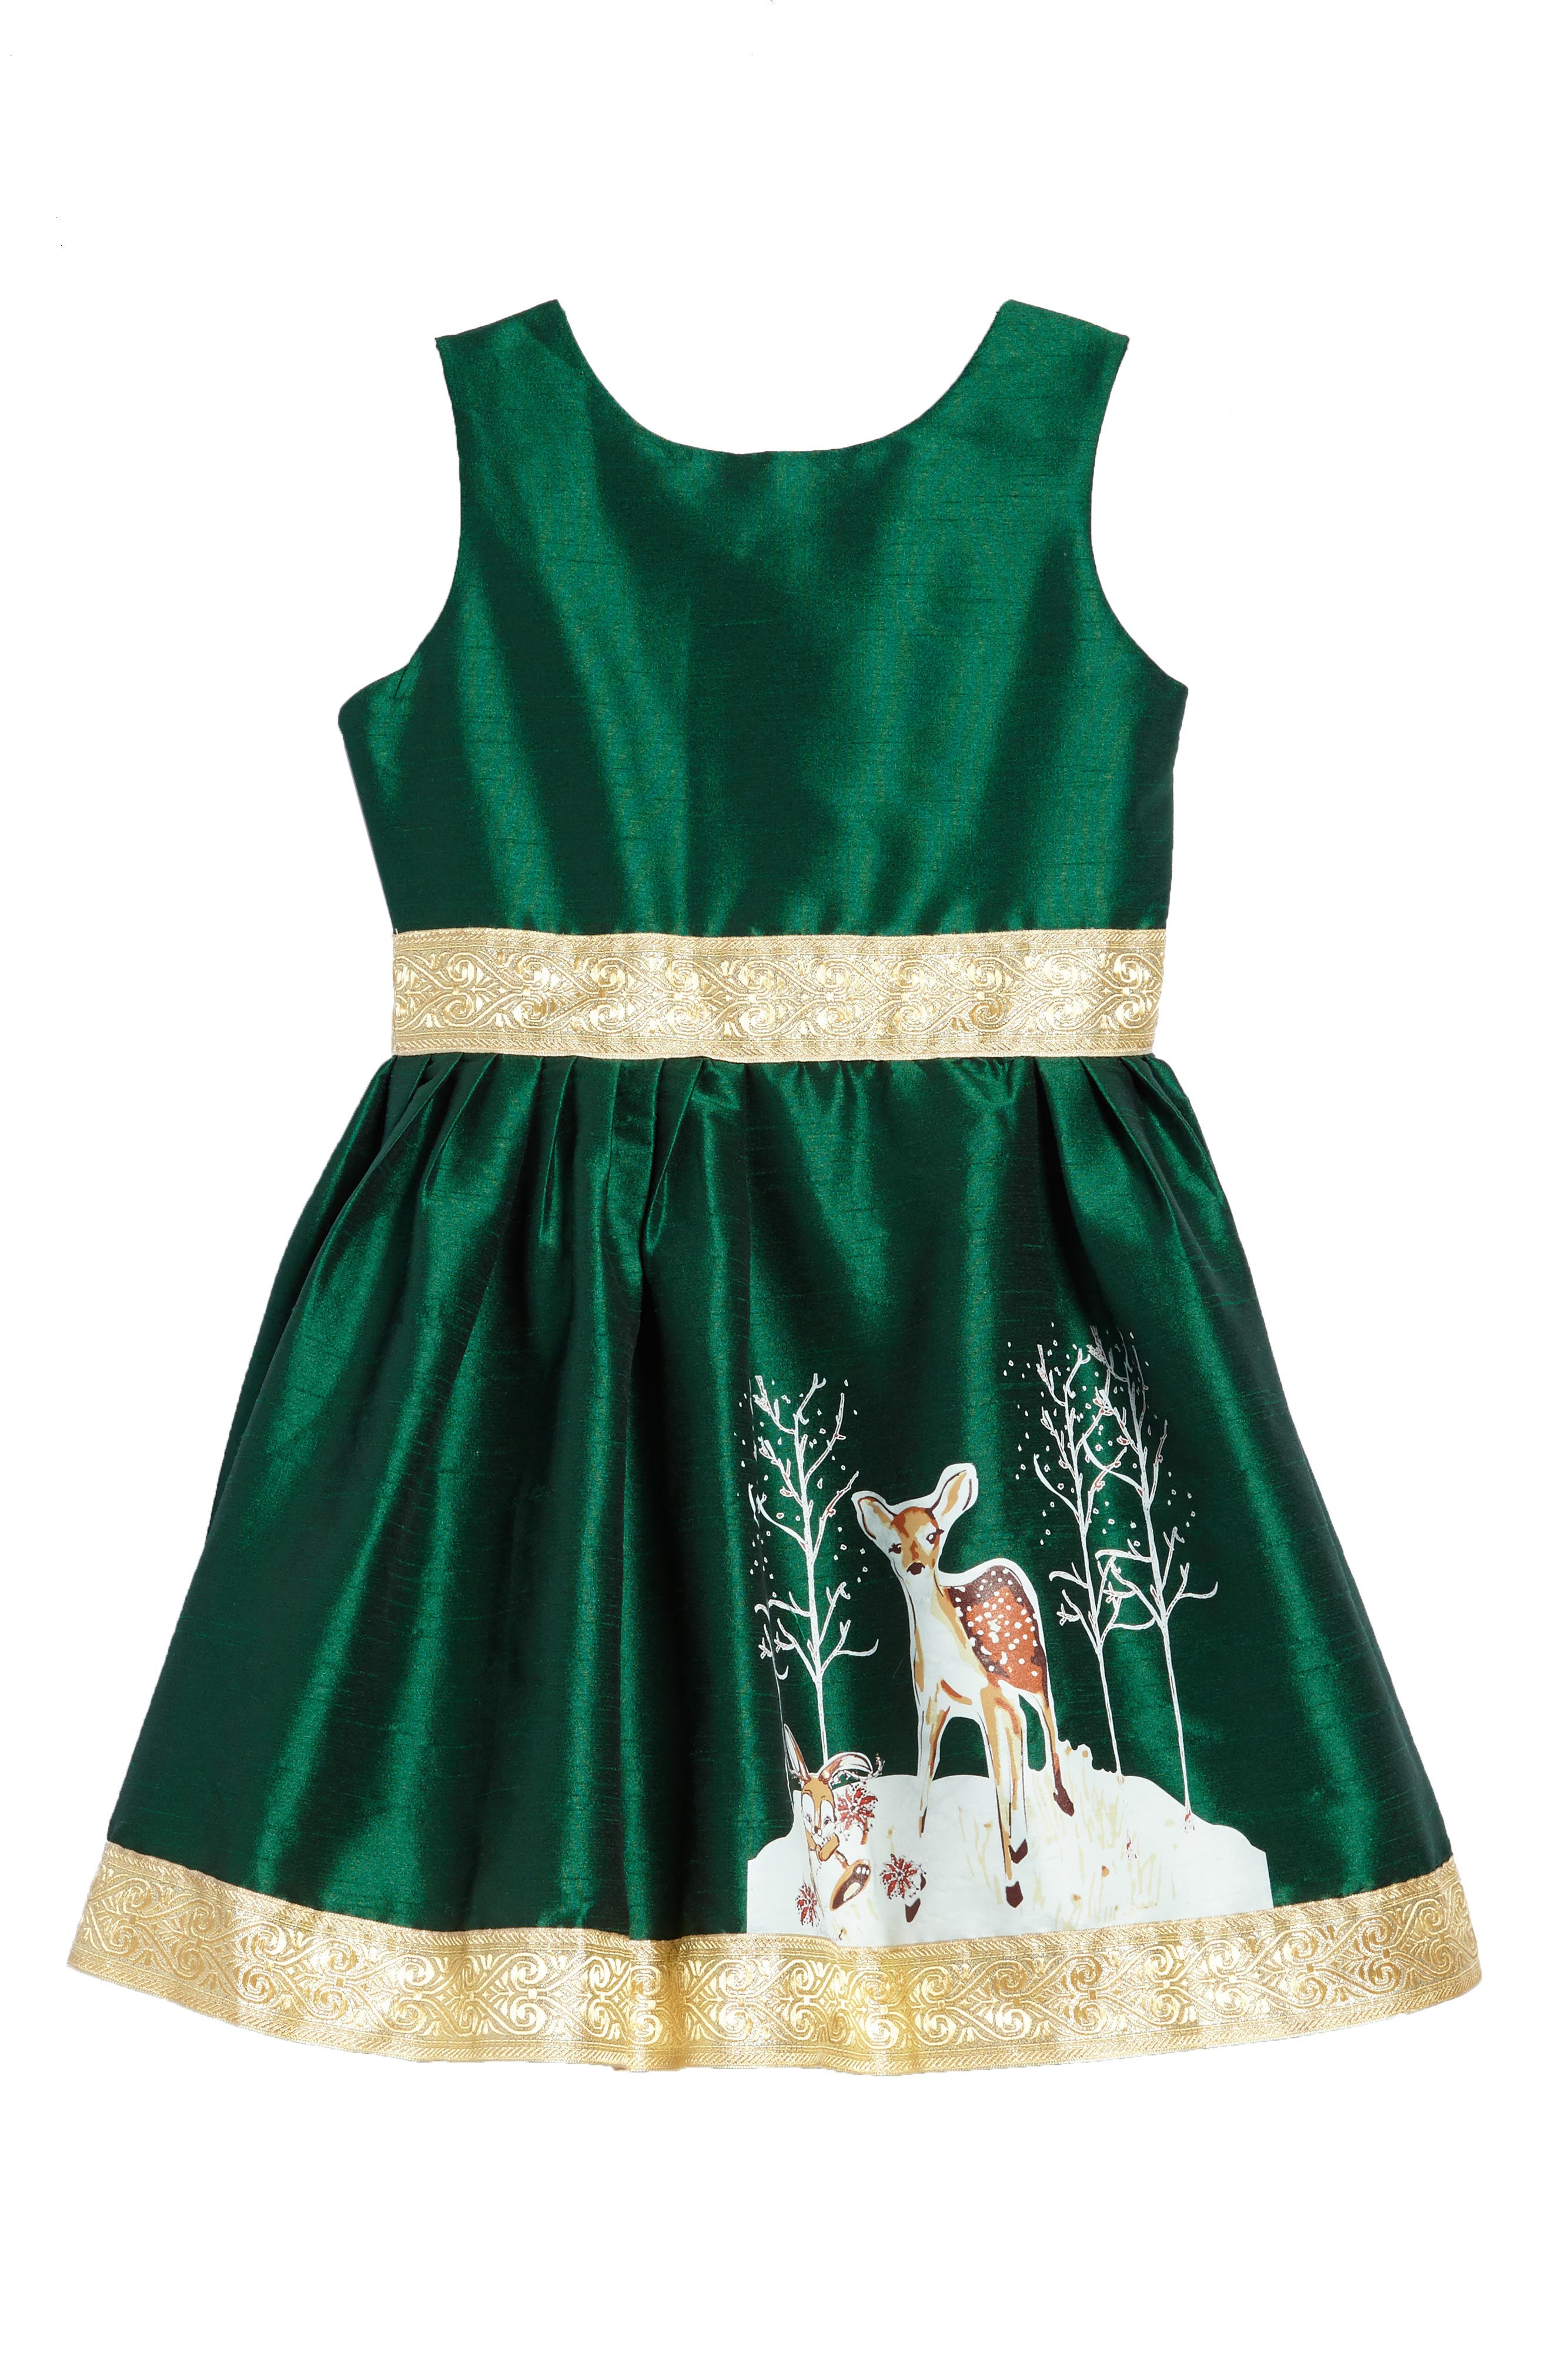 Fawn of Winter Dress,                             Main thumbnail 1, color,                             Green